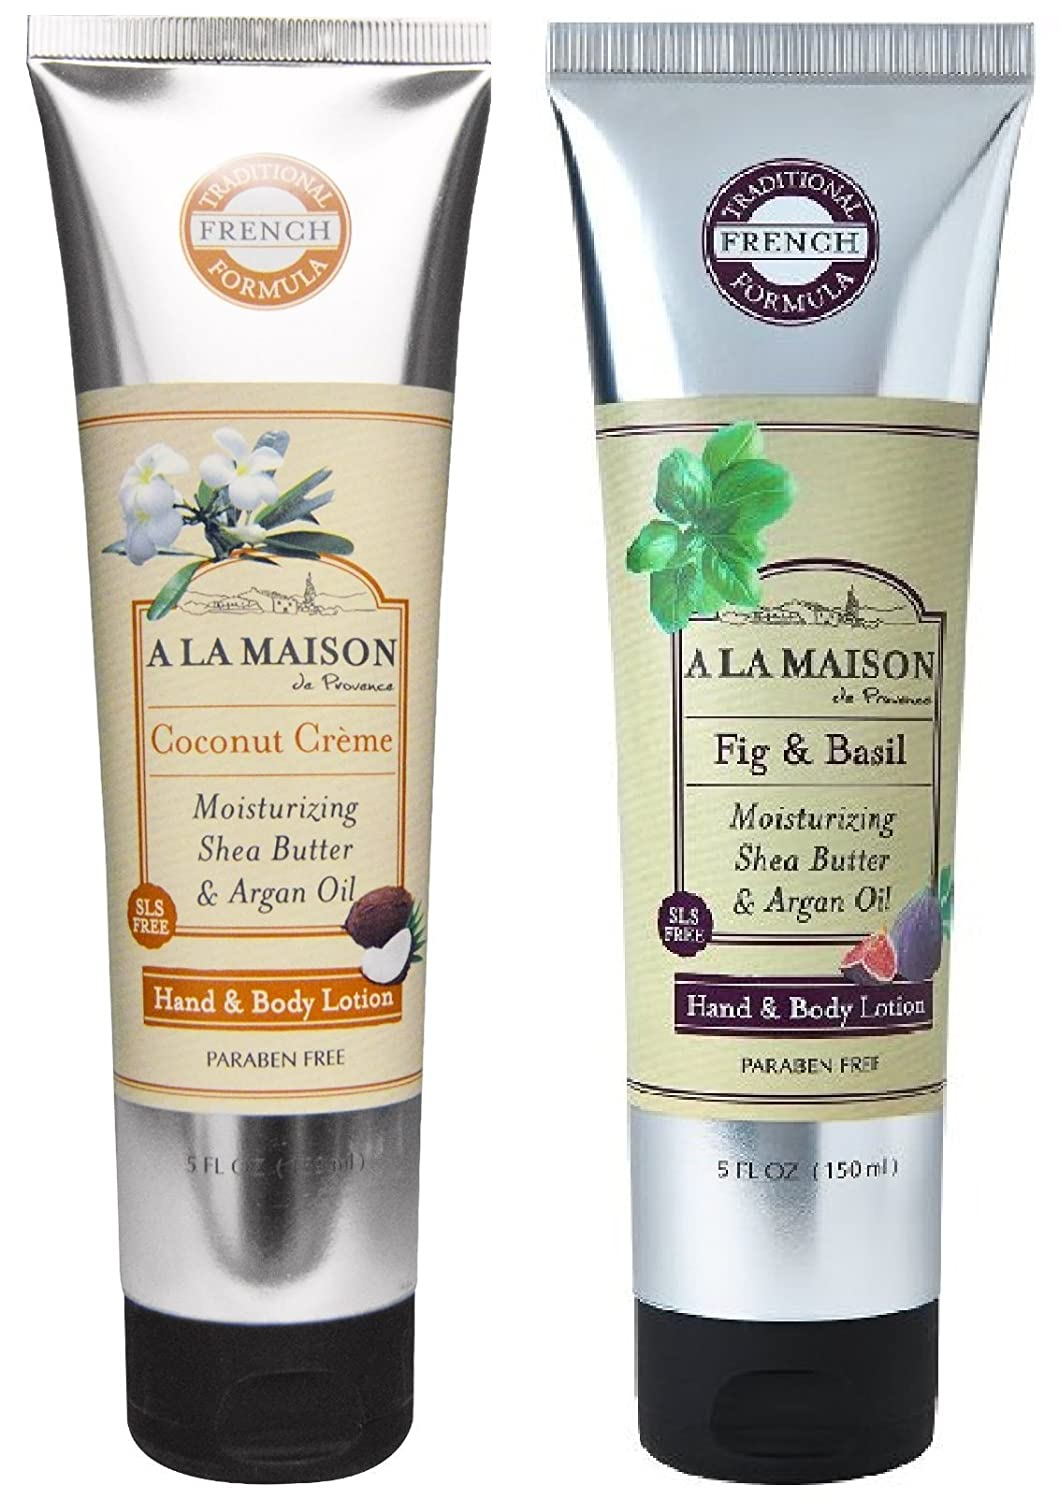 A La Maison Hand & Body Lotion 2 Pack, Fig & Basil and Coconut Creme, 1 tube of each